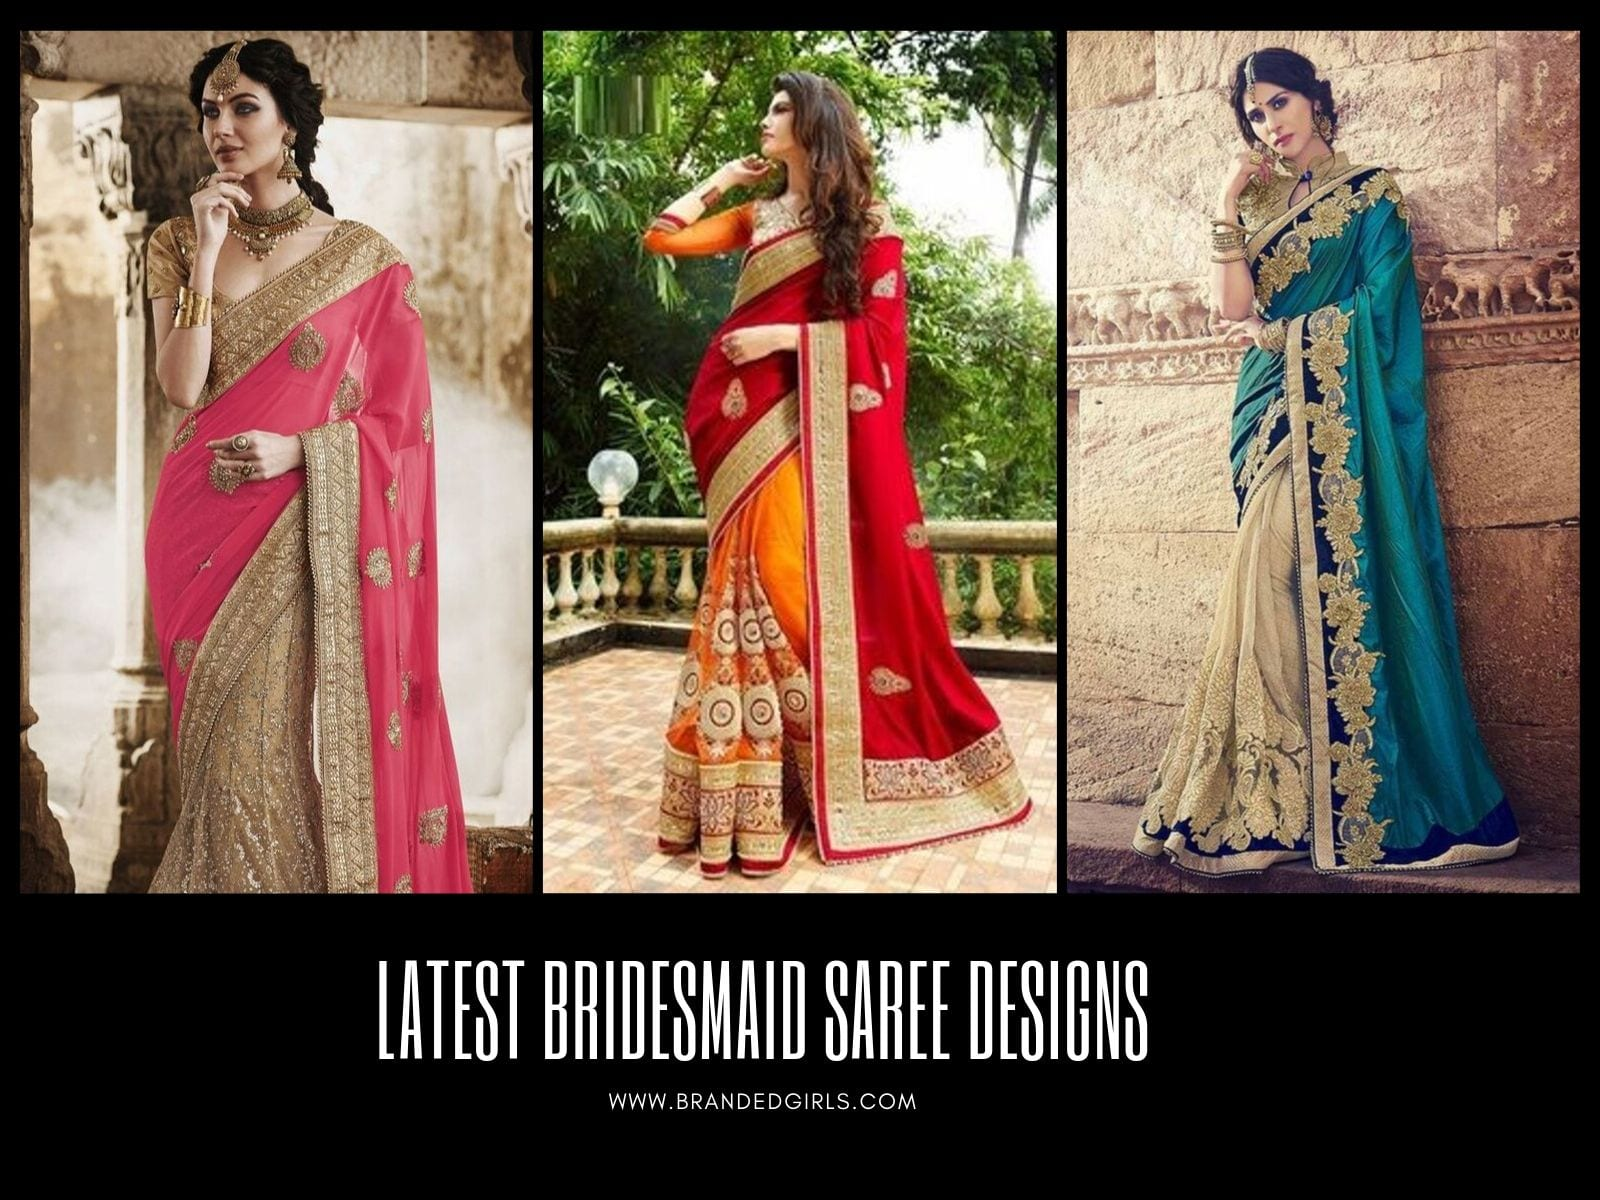 Latest-Bridesmaid-Saree-Designs Latest Bridesmaid Saree Designs-20 New Styles to try in 2019